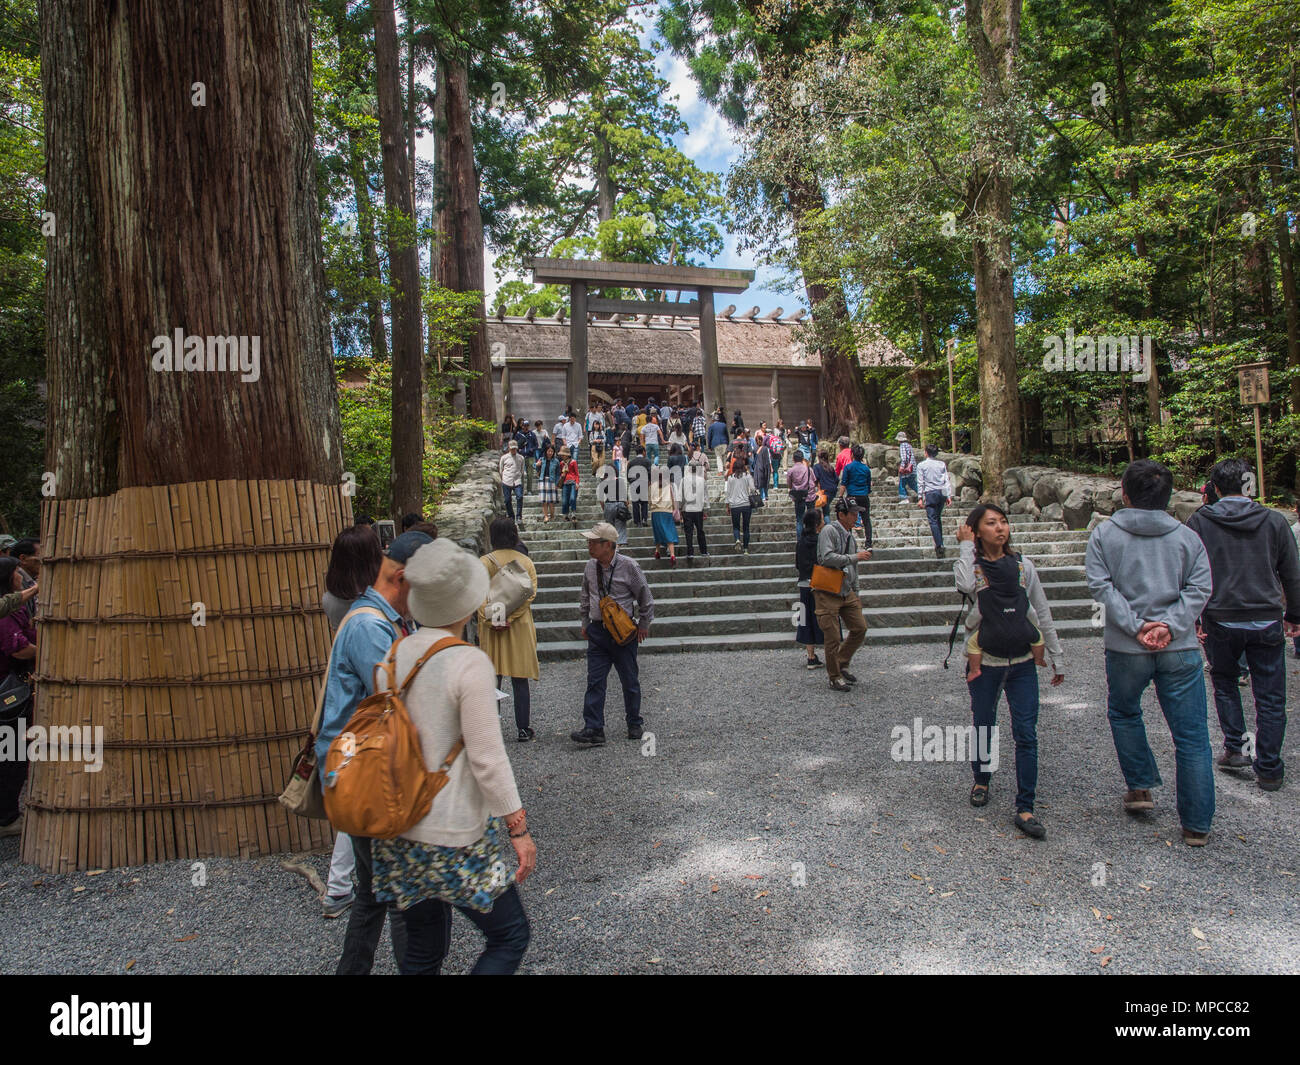 Stairs to Goshoden main sanctuary crowded with visitors come to pray, Naiku, Ise Jingu, Mie, Japan - Stock Image